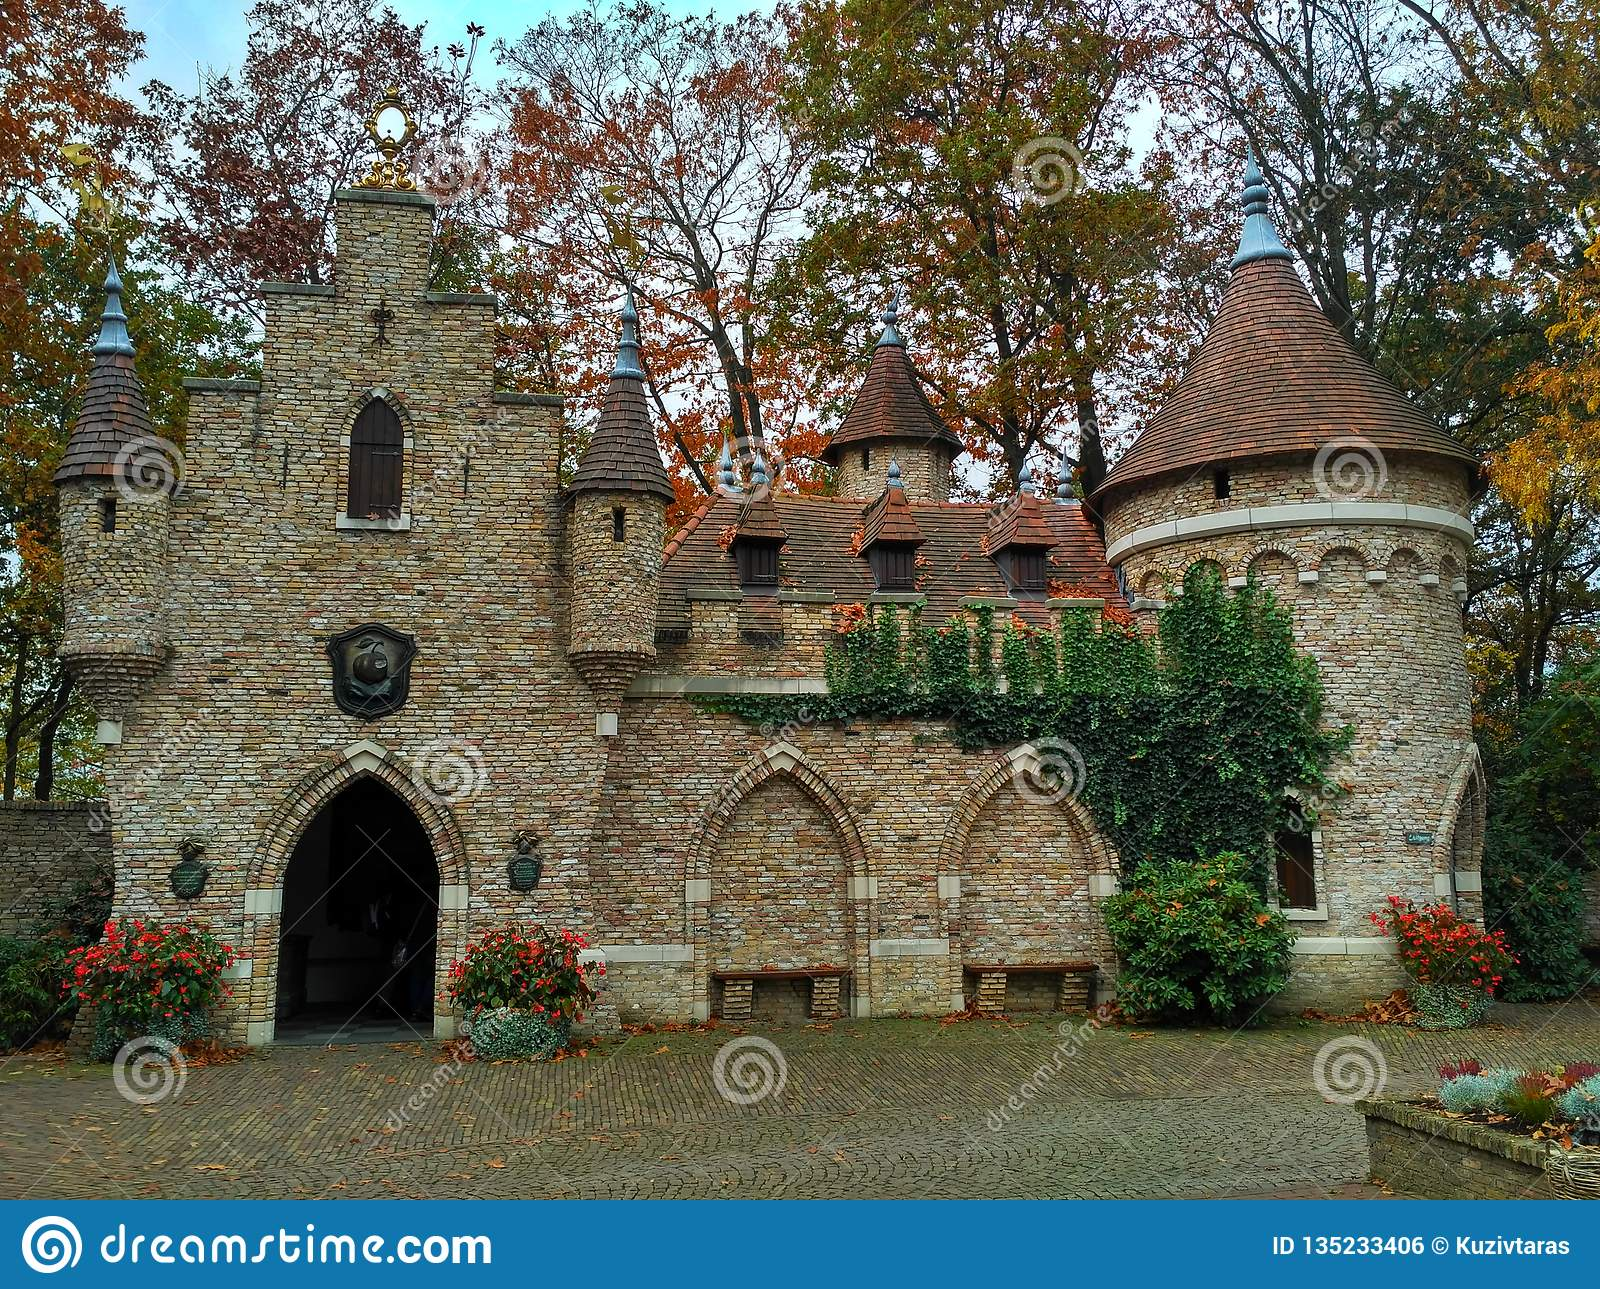 Kaatsheuvel / The Netherlands - November 03 2016: Fairytale castle in Theme Park Efteling